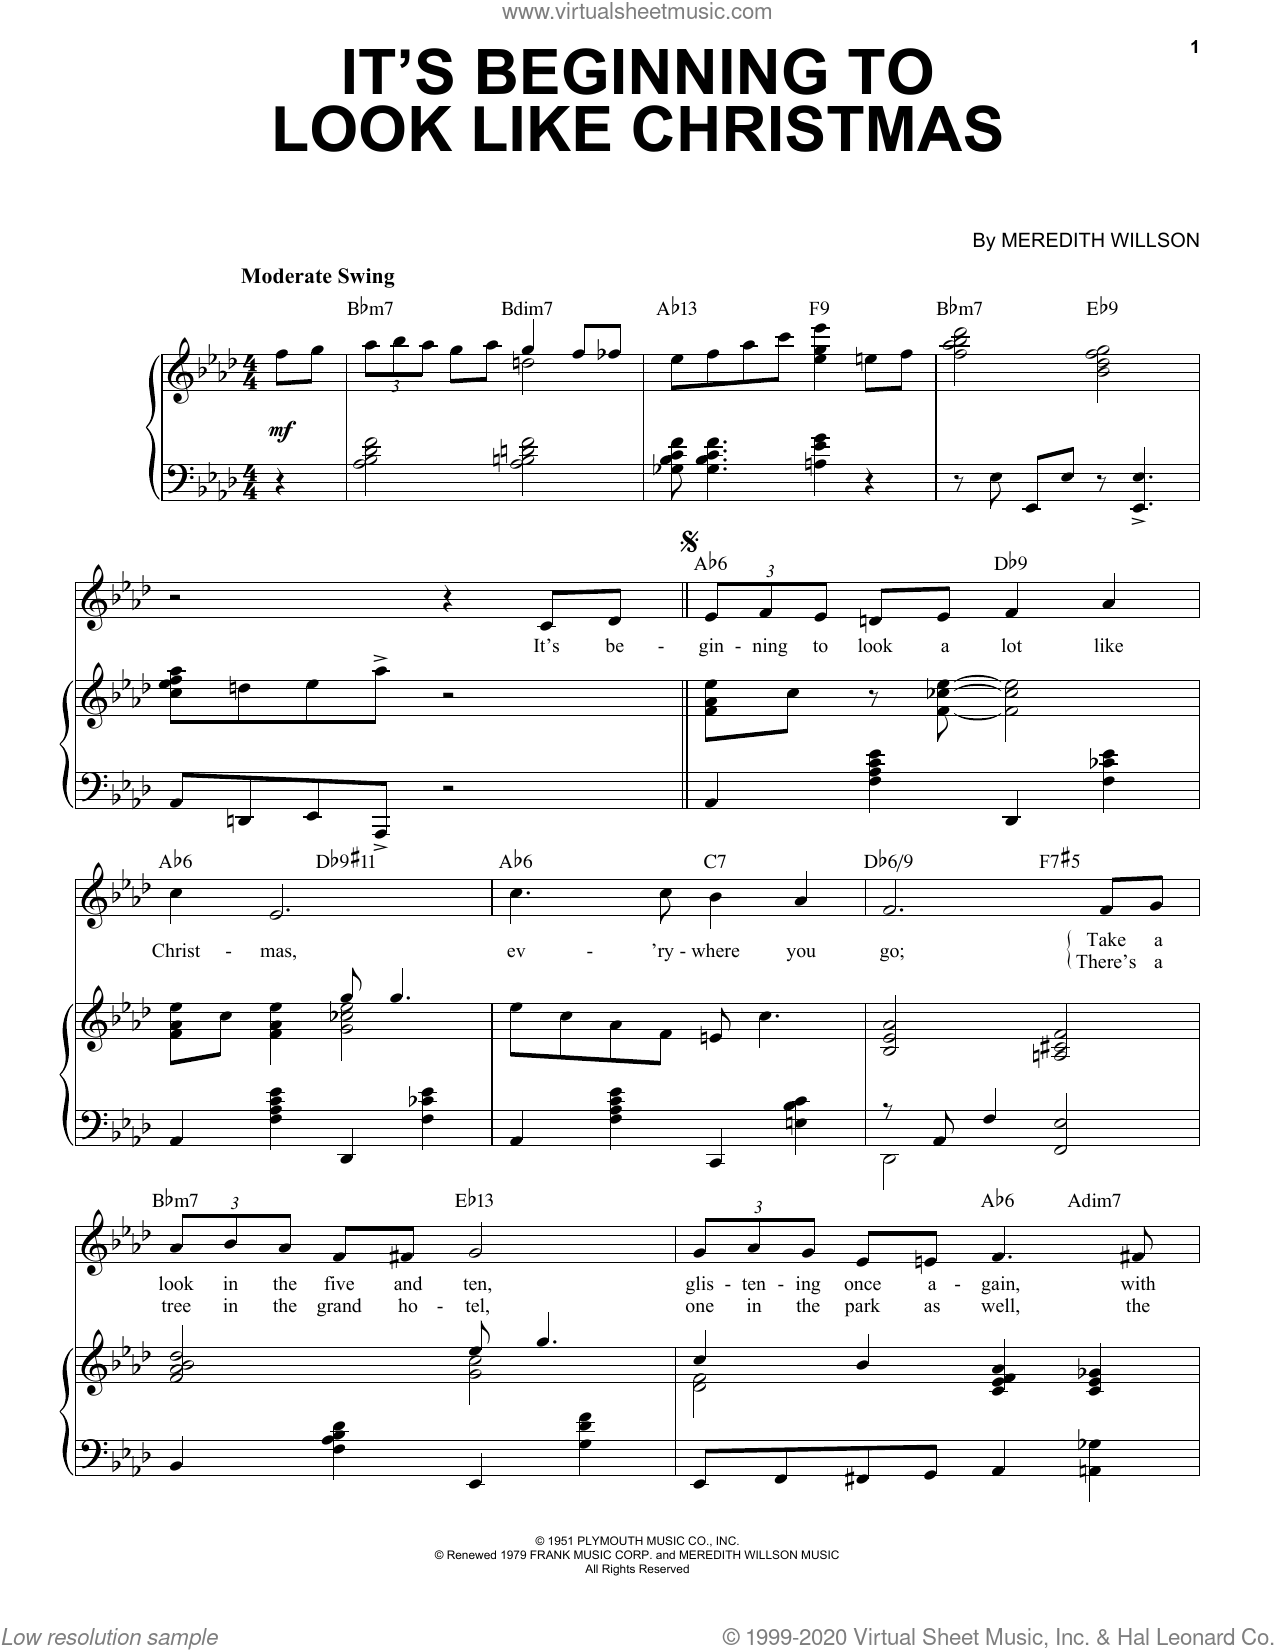 It's Beginning To Look Like Christmas [Jazz Version] (arr. Brent Edstrom) sheet music for voice and piano (High Voice) by Meredith Willson and Brent Edstrom, intermediate skill level